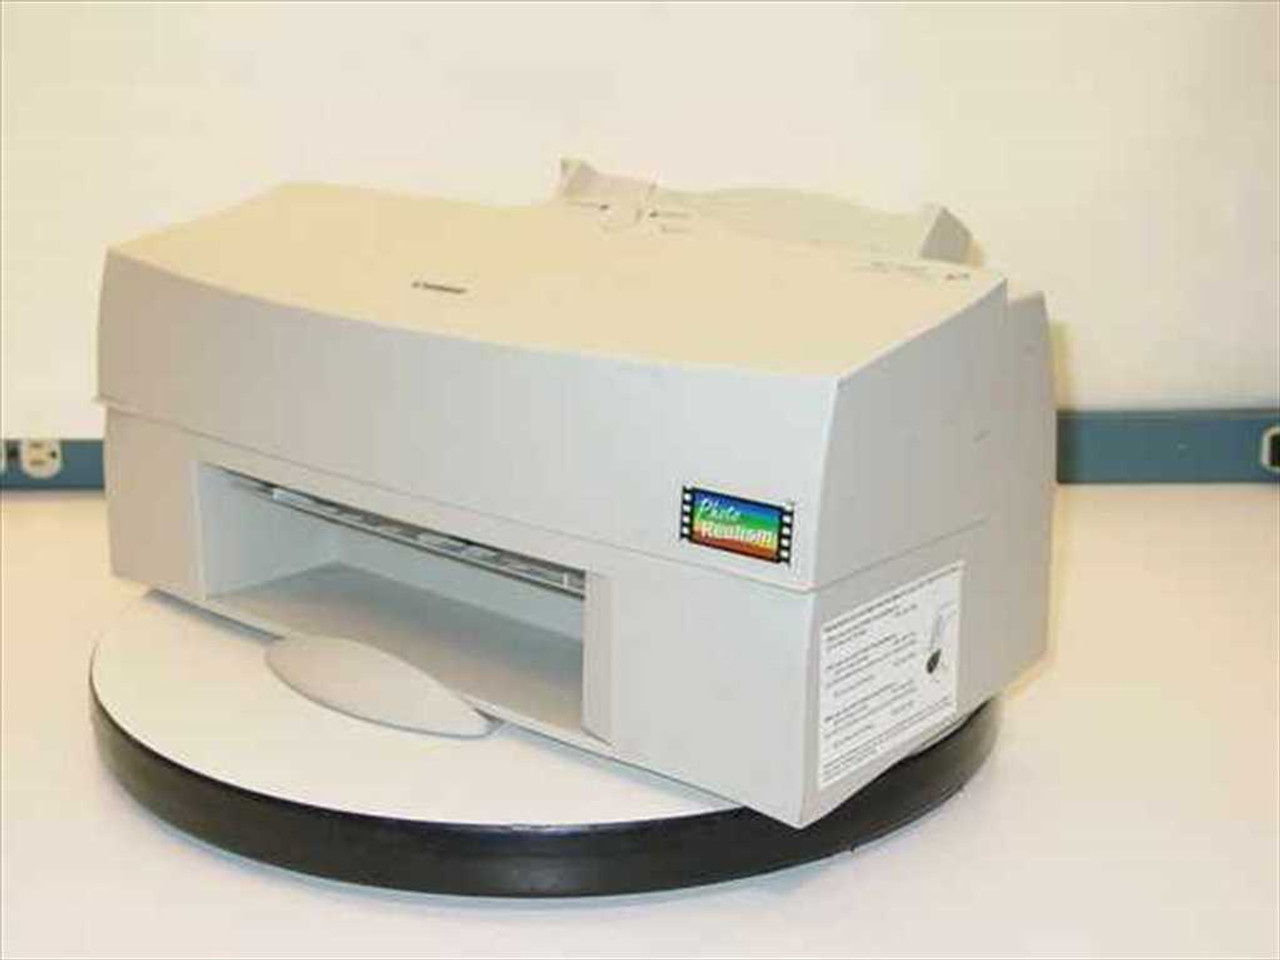 New Drivers: Canon BJC-7000 Printer